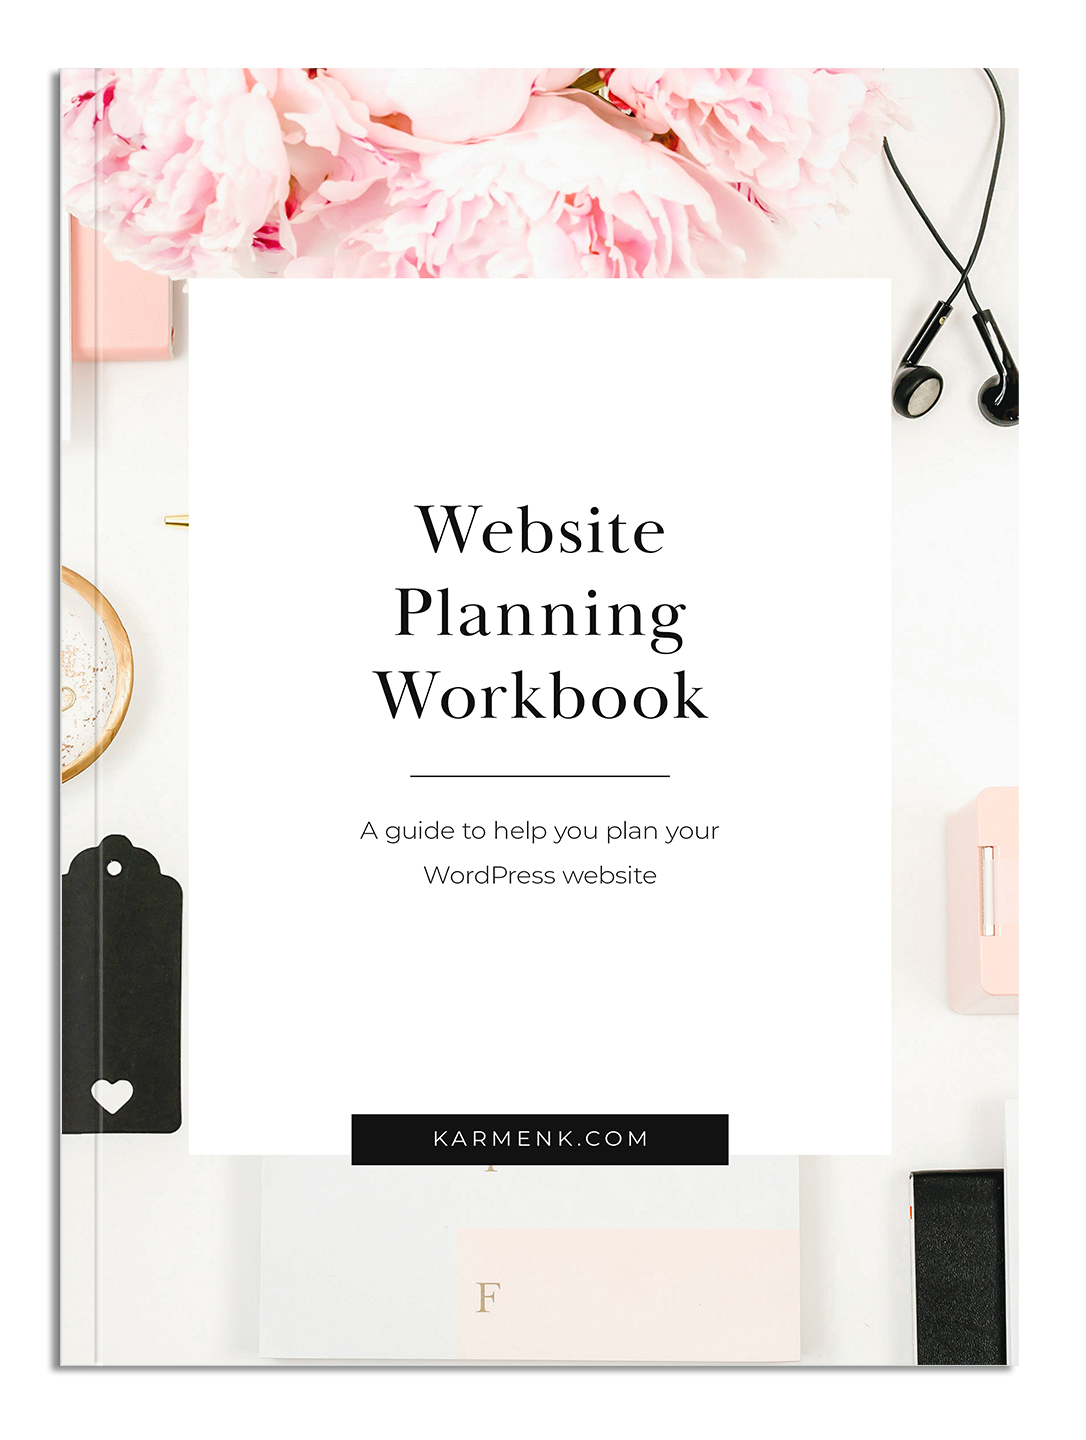 Website Planning Workbook